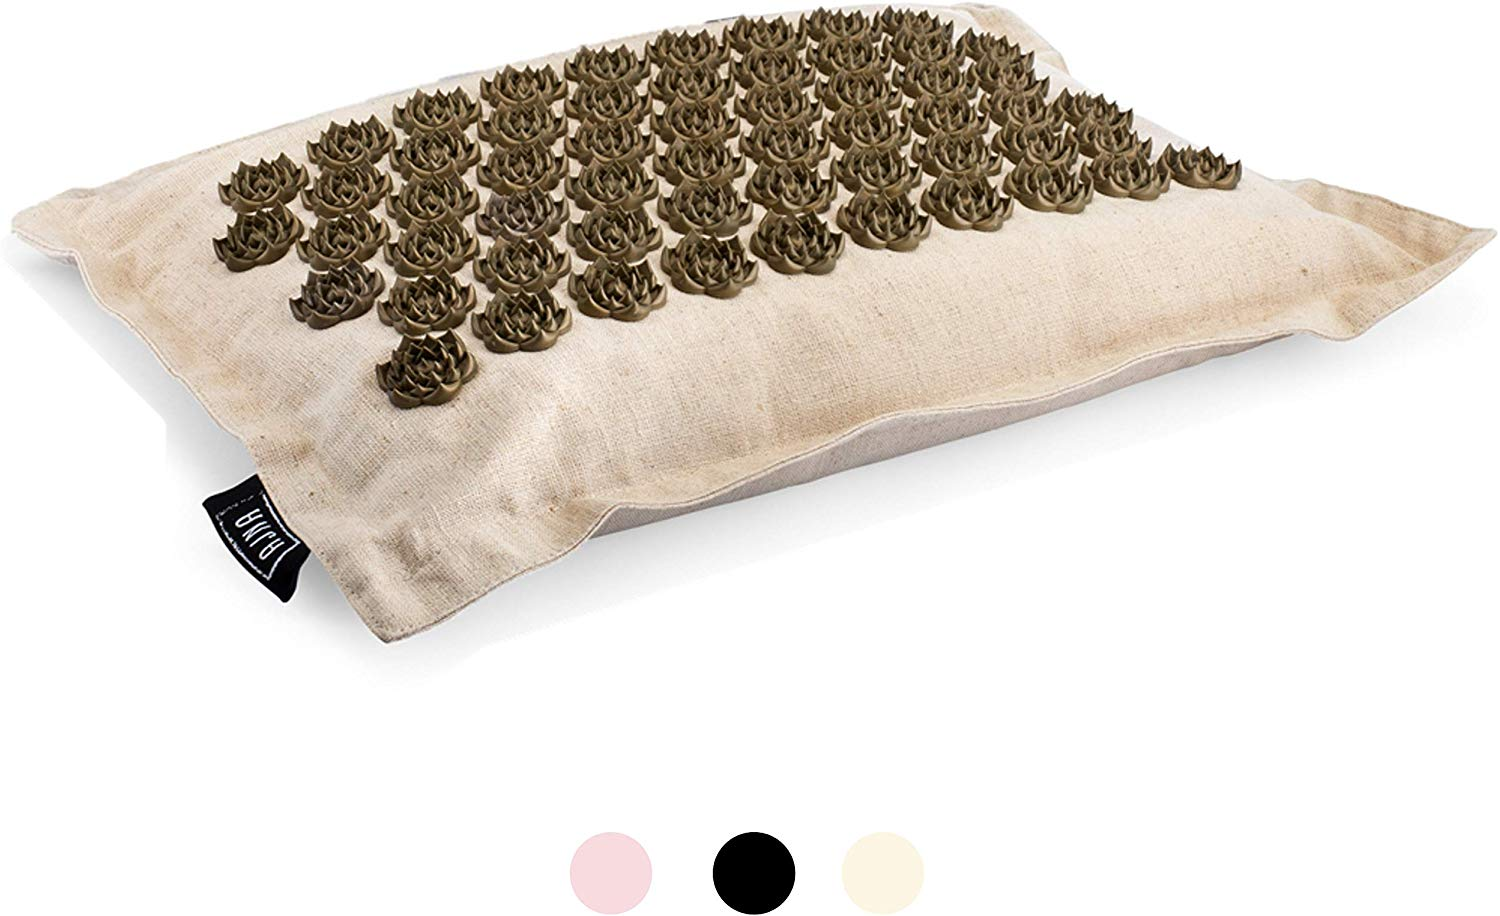 Ajna Best Orthopedic Pillow review by www.dailysleep.org